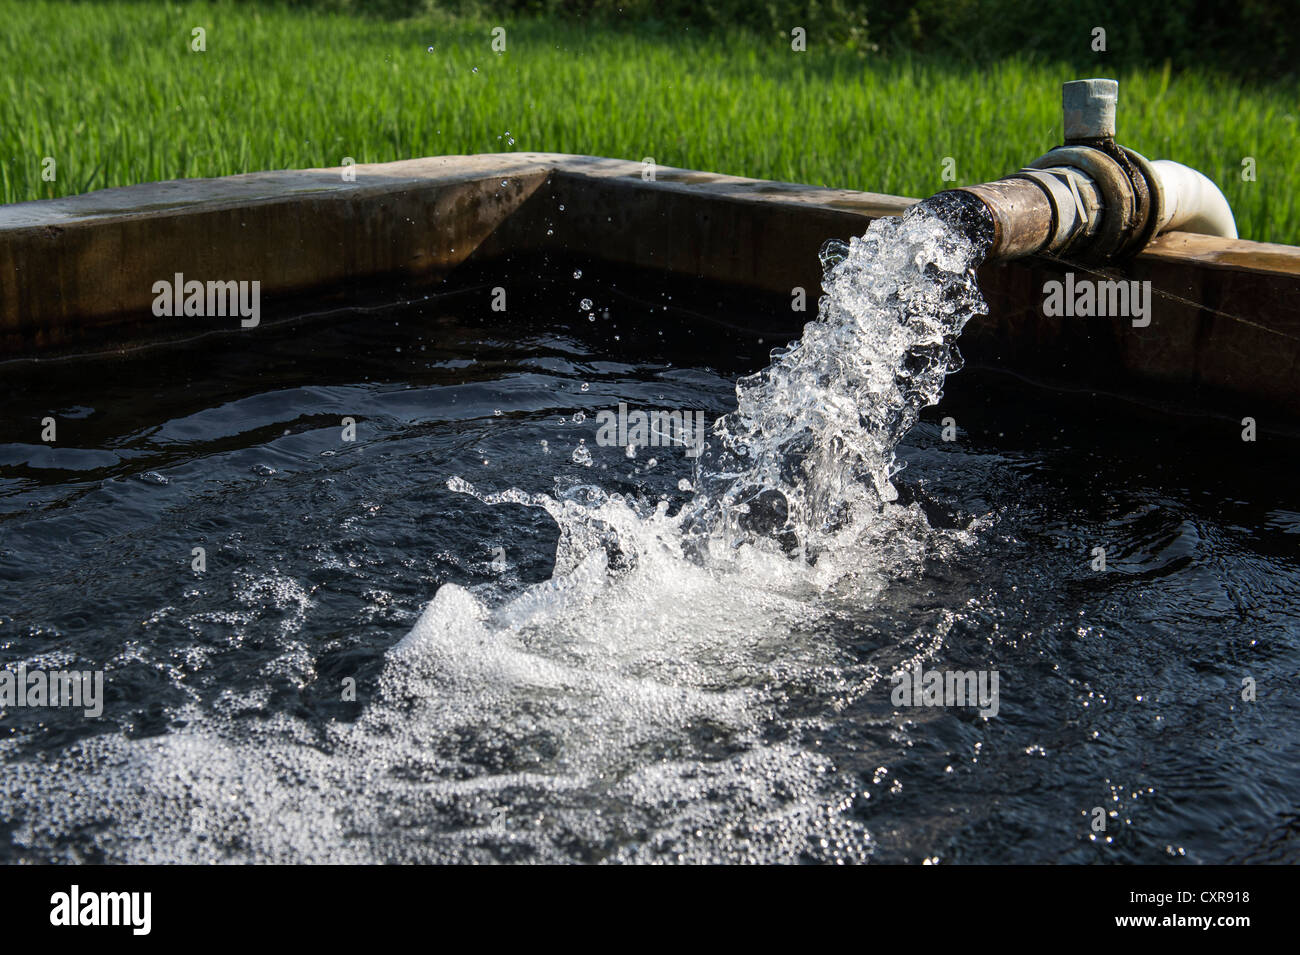 Water being pumped to a storage tank before going onto a rice paddy for irrigation. Andhra Pradesh, India - Stock Image